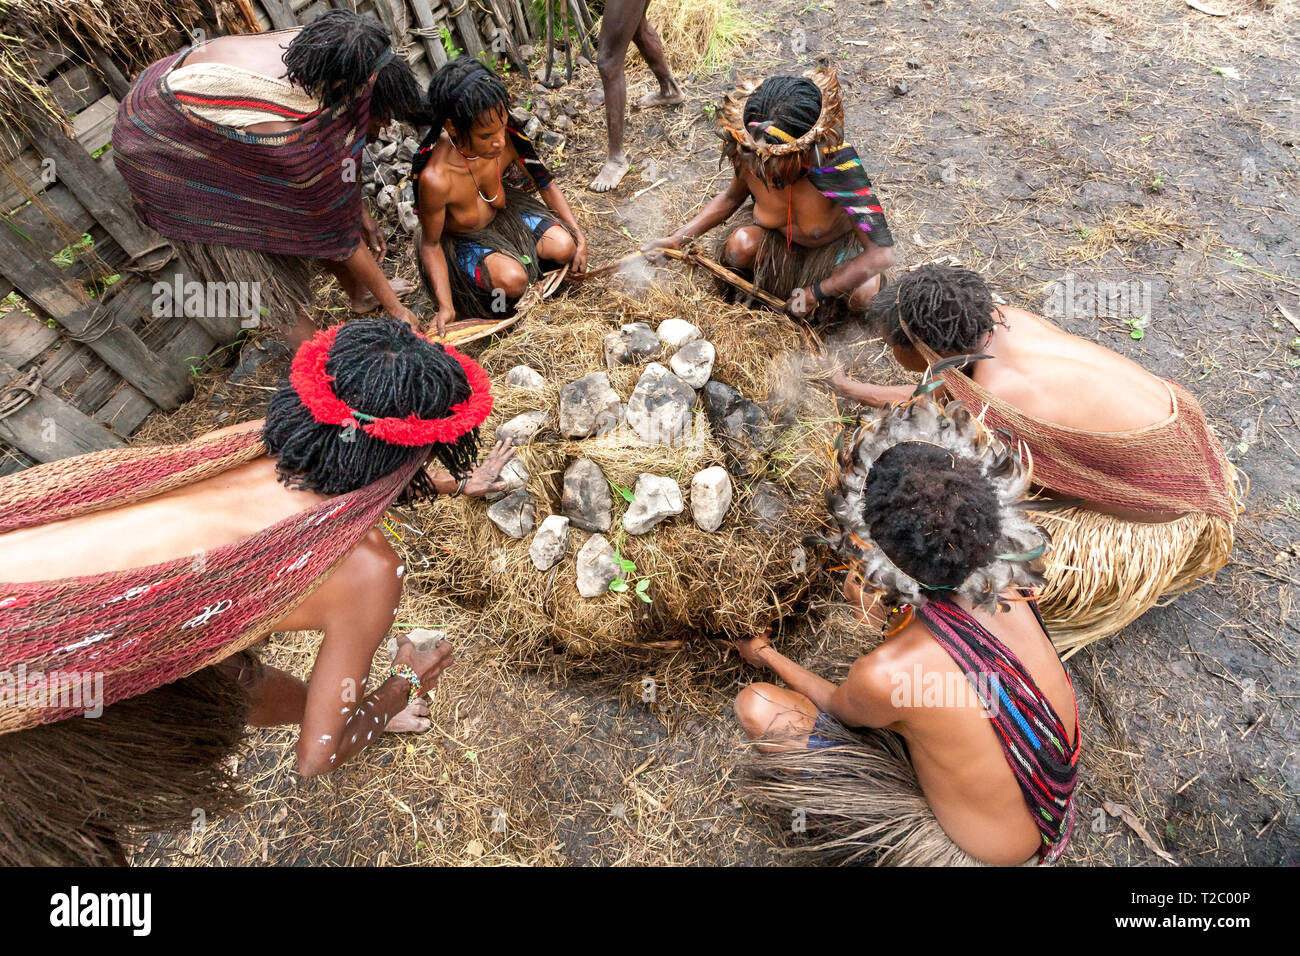 Wamena, Indonesia - January 9, 2010: Dani women cooking food into a hole filled with hot stones. Baliem Valley, Papua New Guinea. - Stock Image